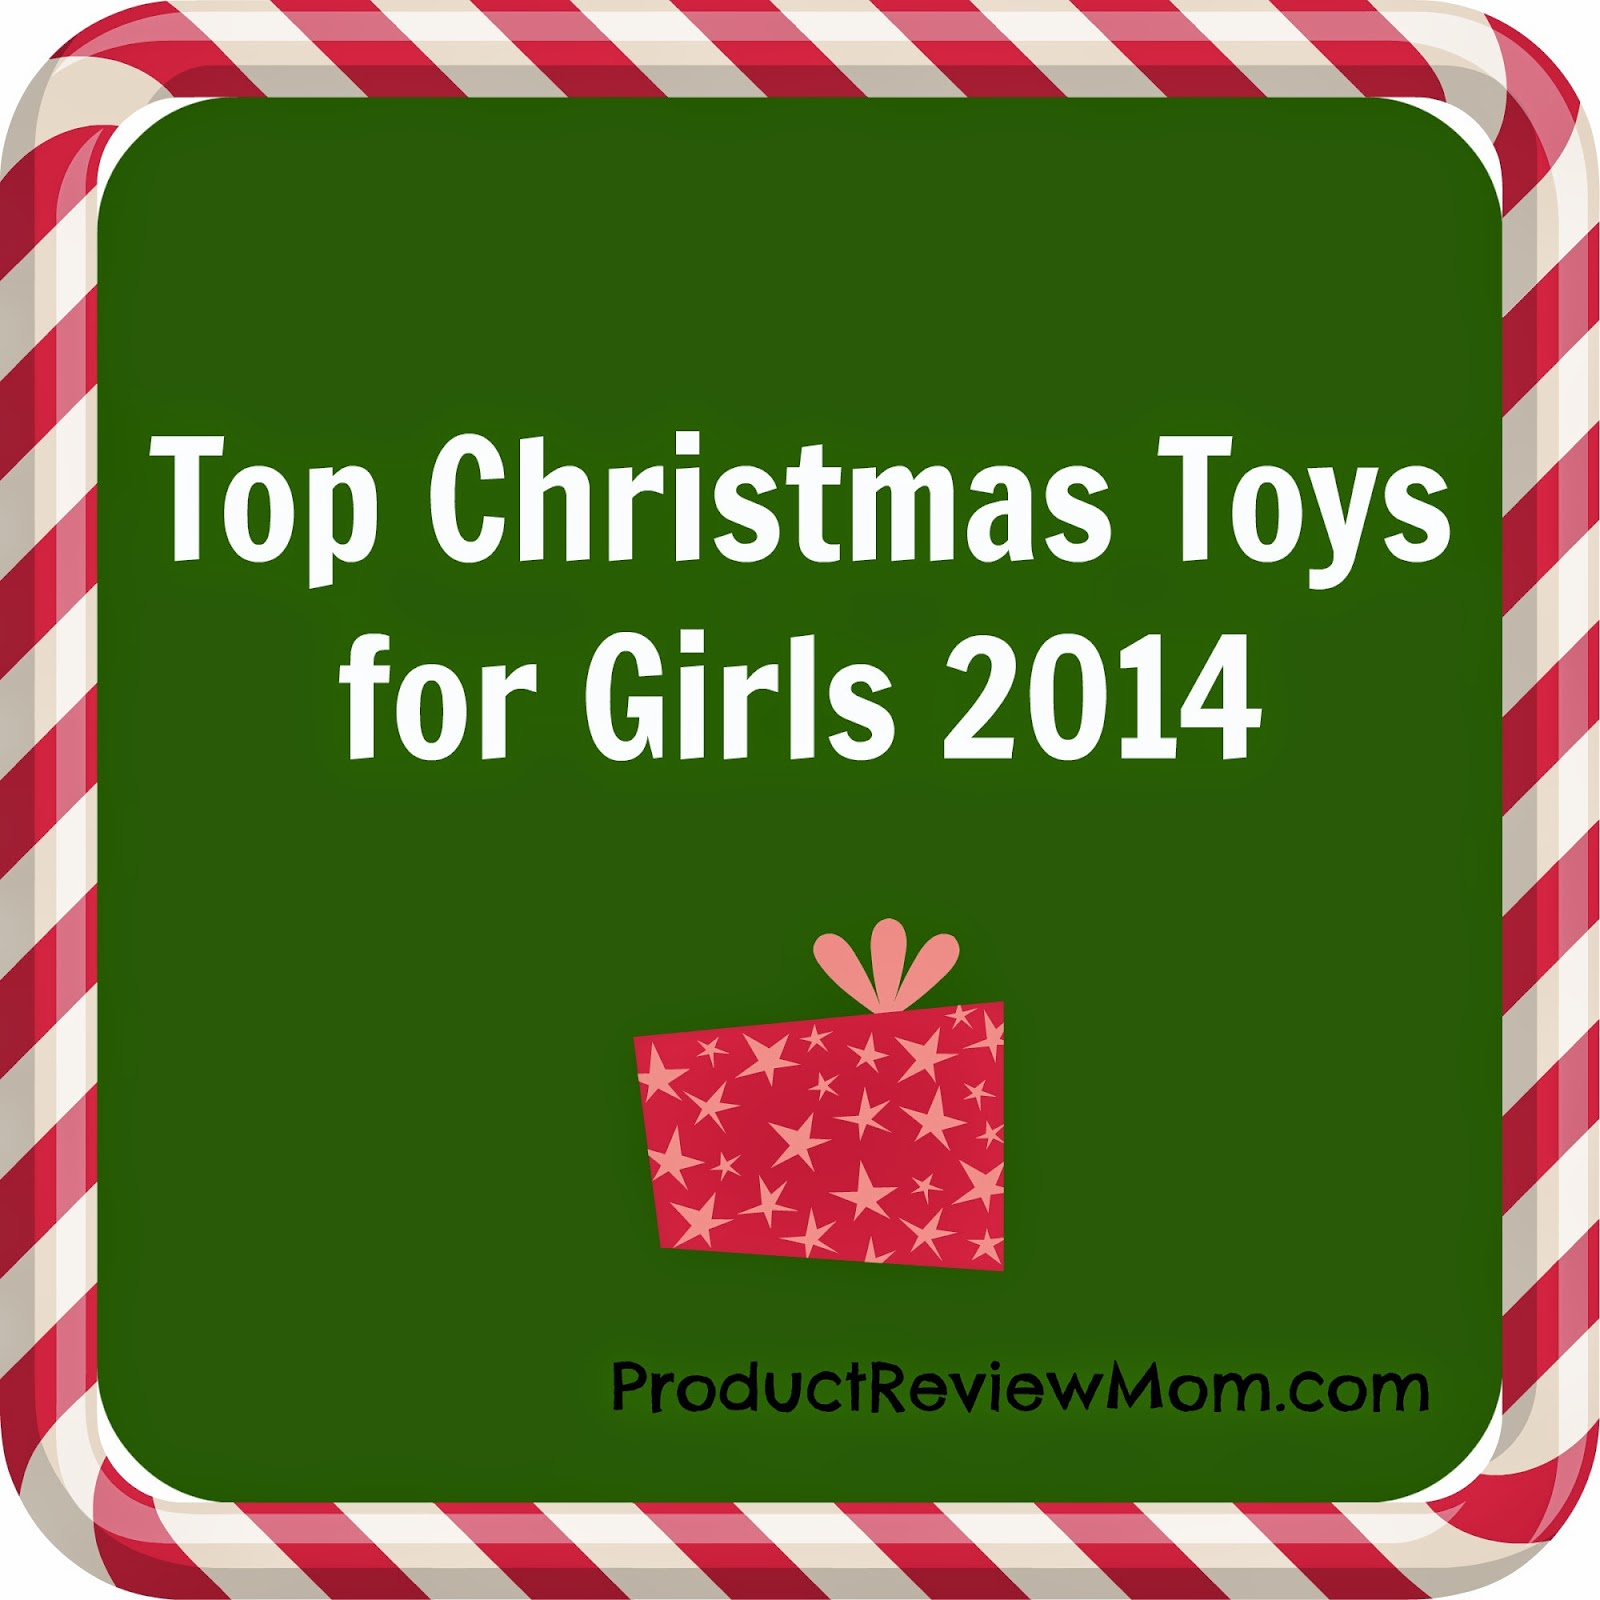 Top Christmas Toys for Girls 2014 #HolidayGiftGuide via www.productreviewmom.com